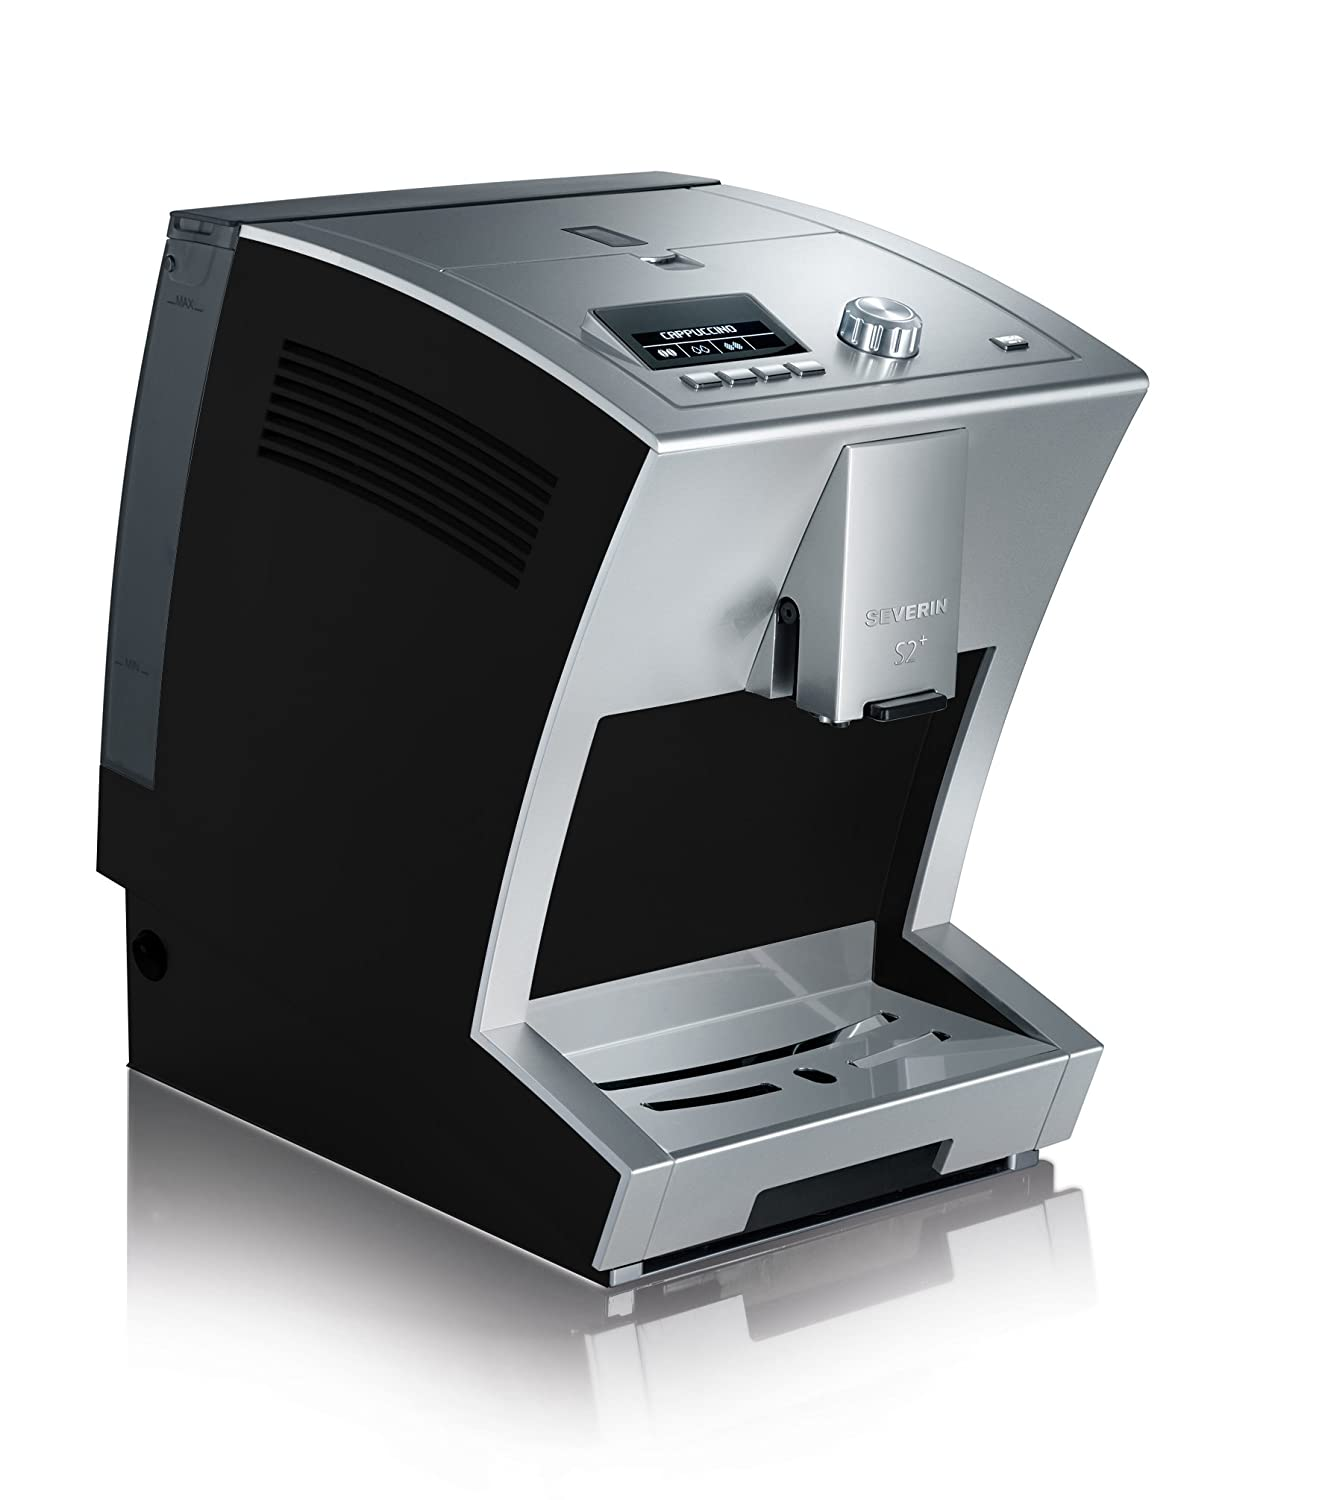 Severin KV 8027 S2+ One Touch - Cafetera automática, color negro y ...